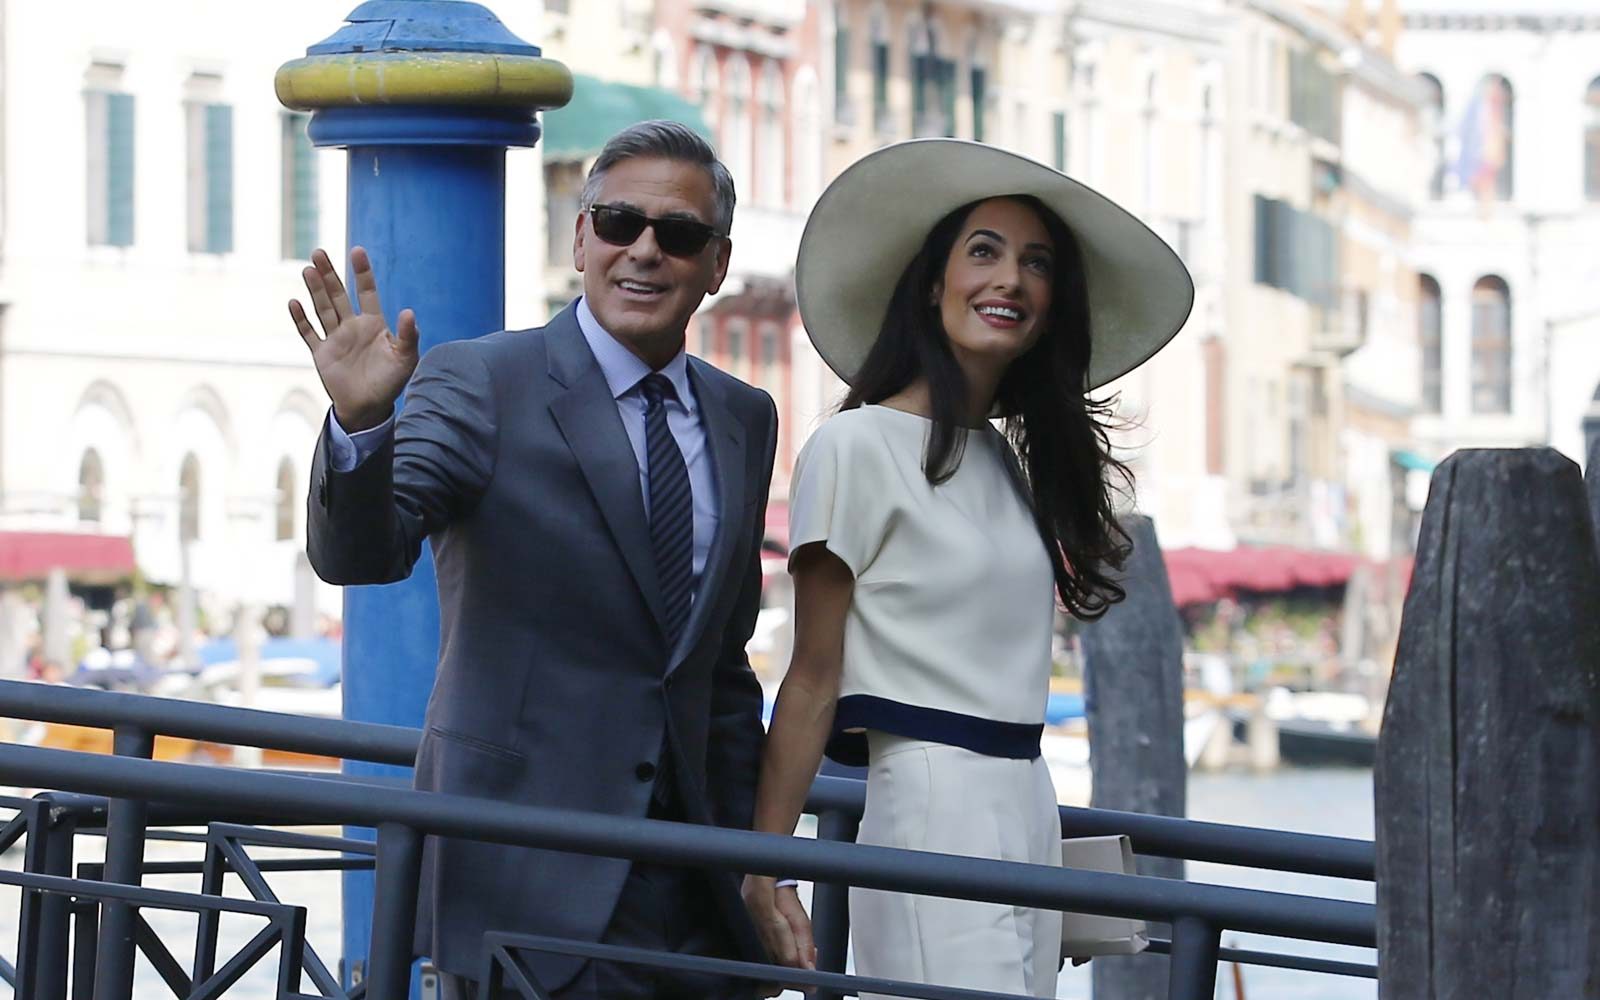 George and Amal Clooney Take Newborn Twins on Their First Trip to Italy   Travel + Leisure